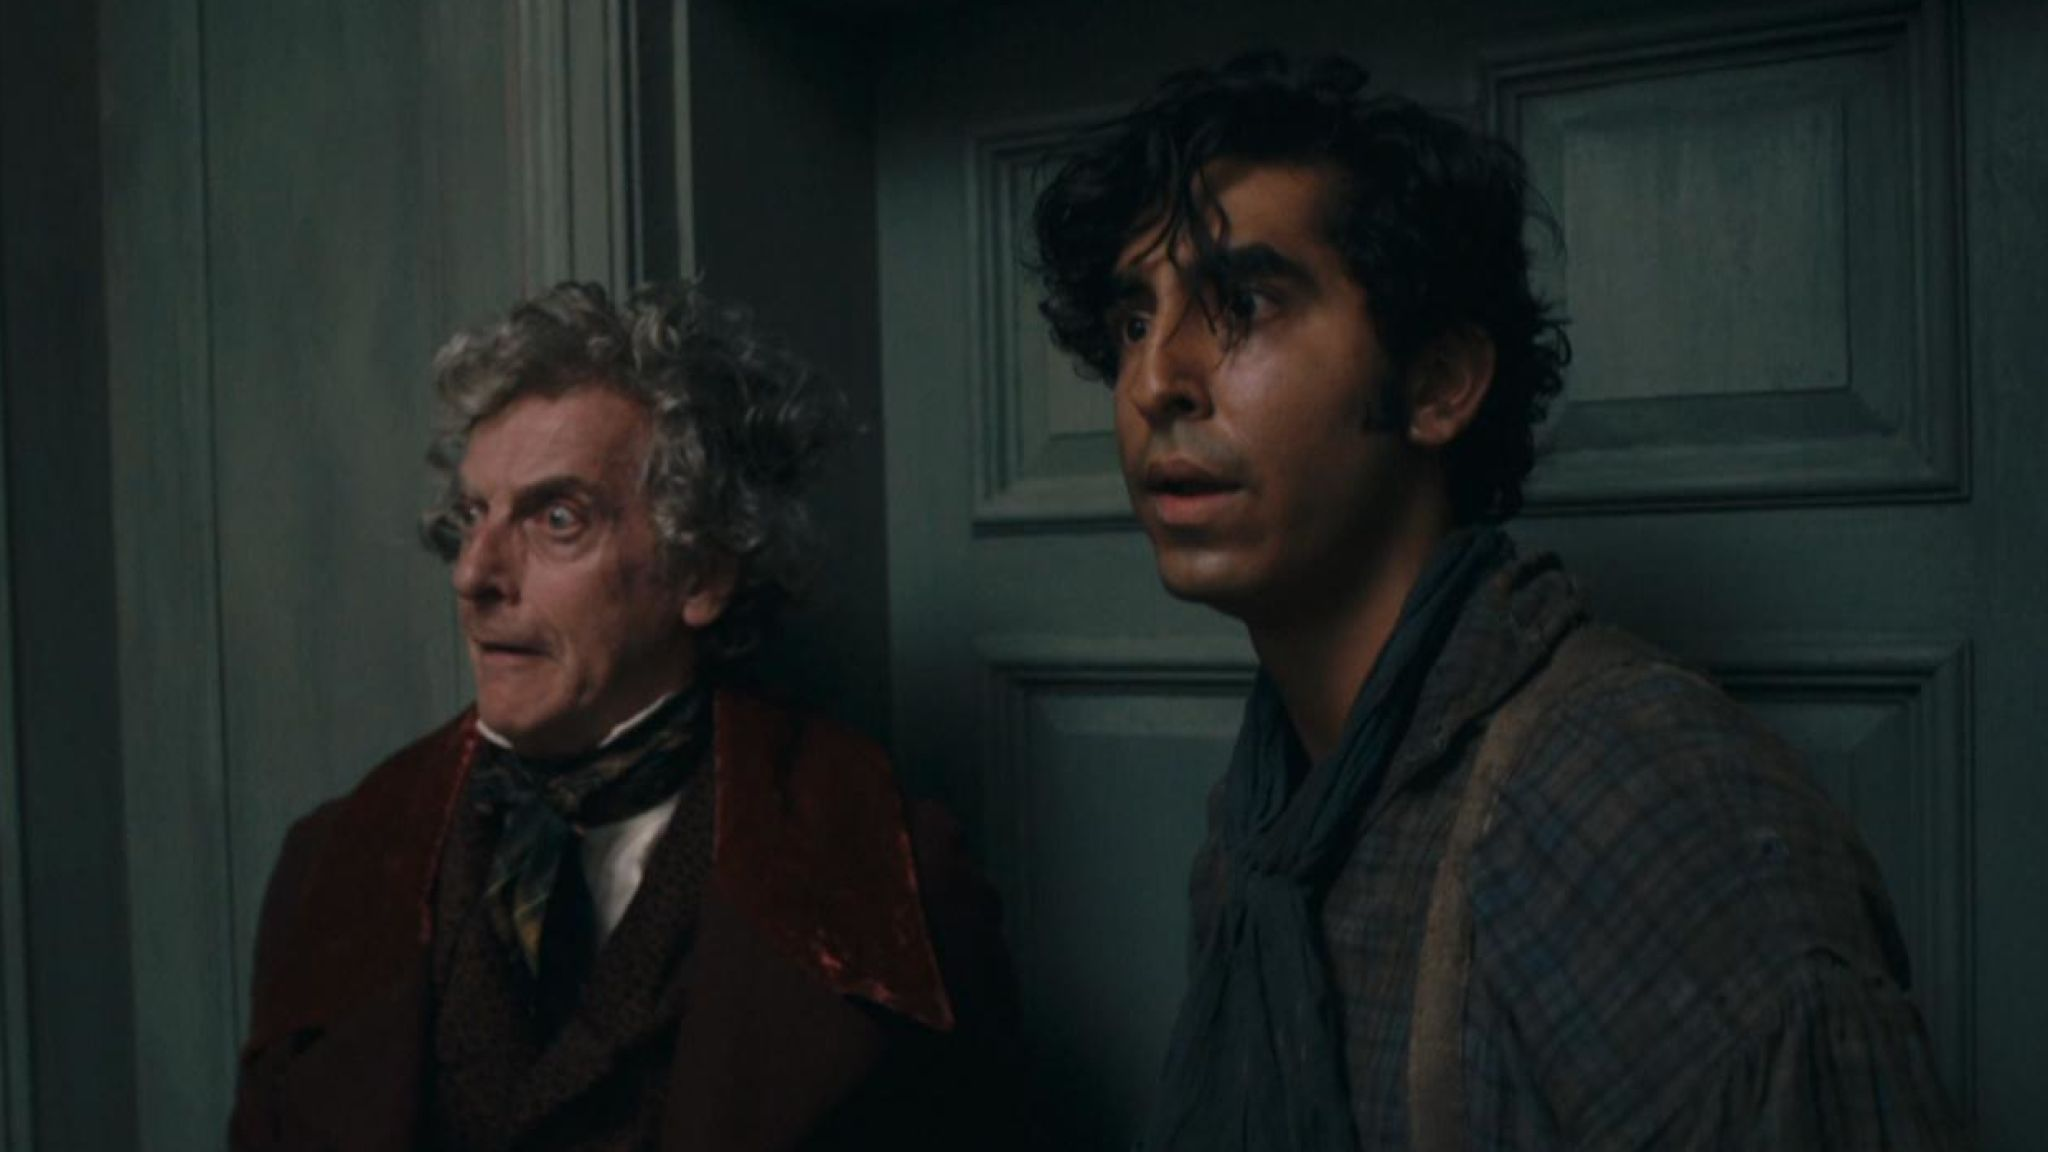 Peter Capaldi, left, and Dev Capaldi, right, star in the film